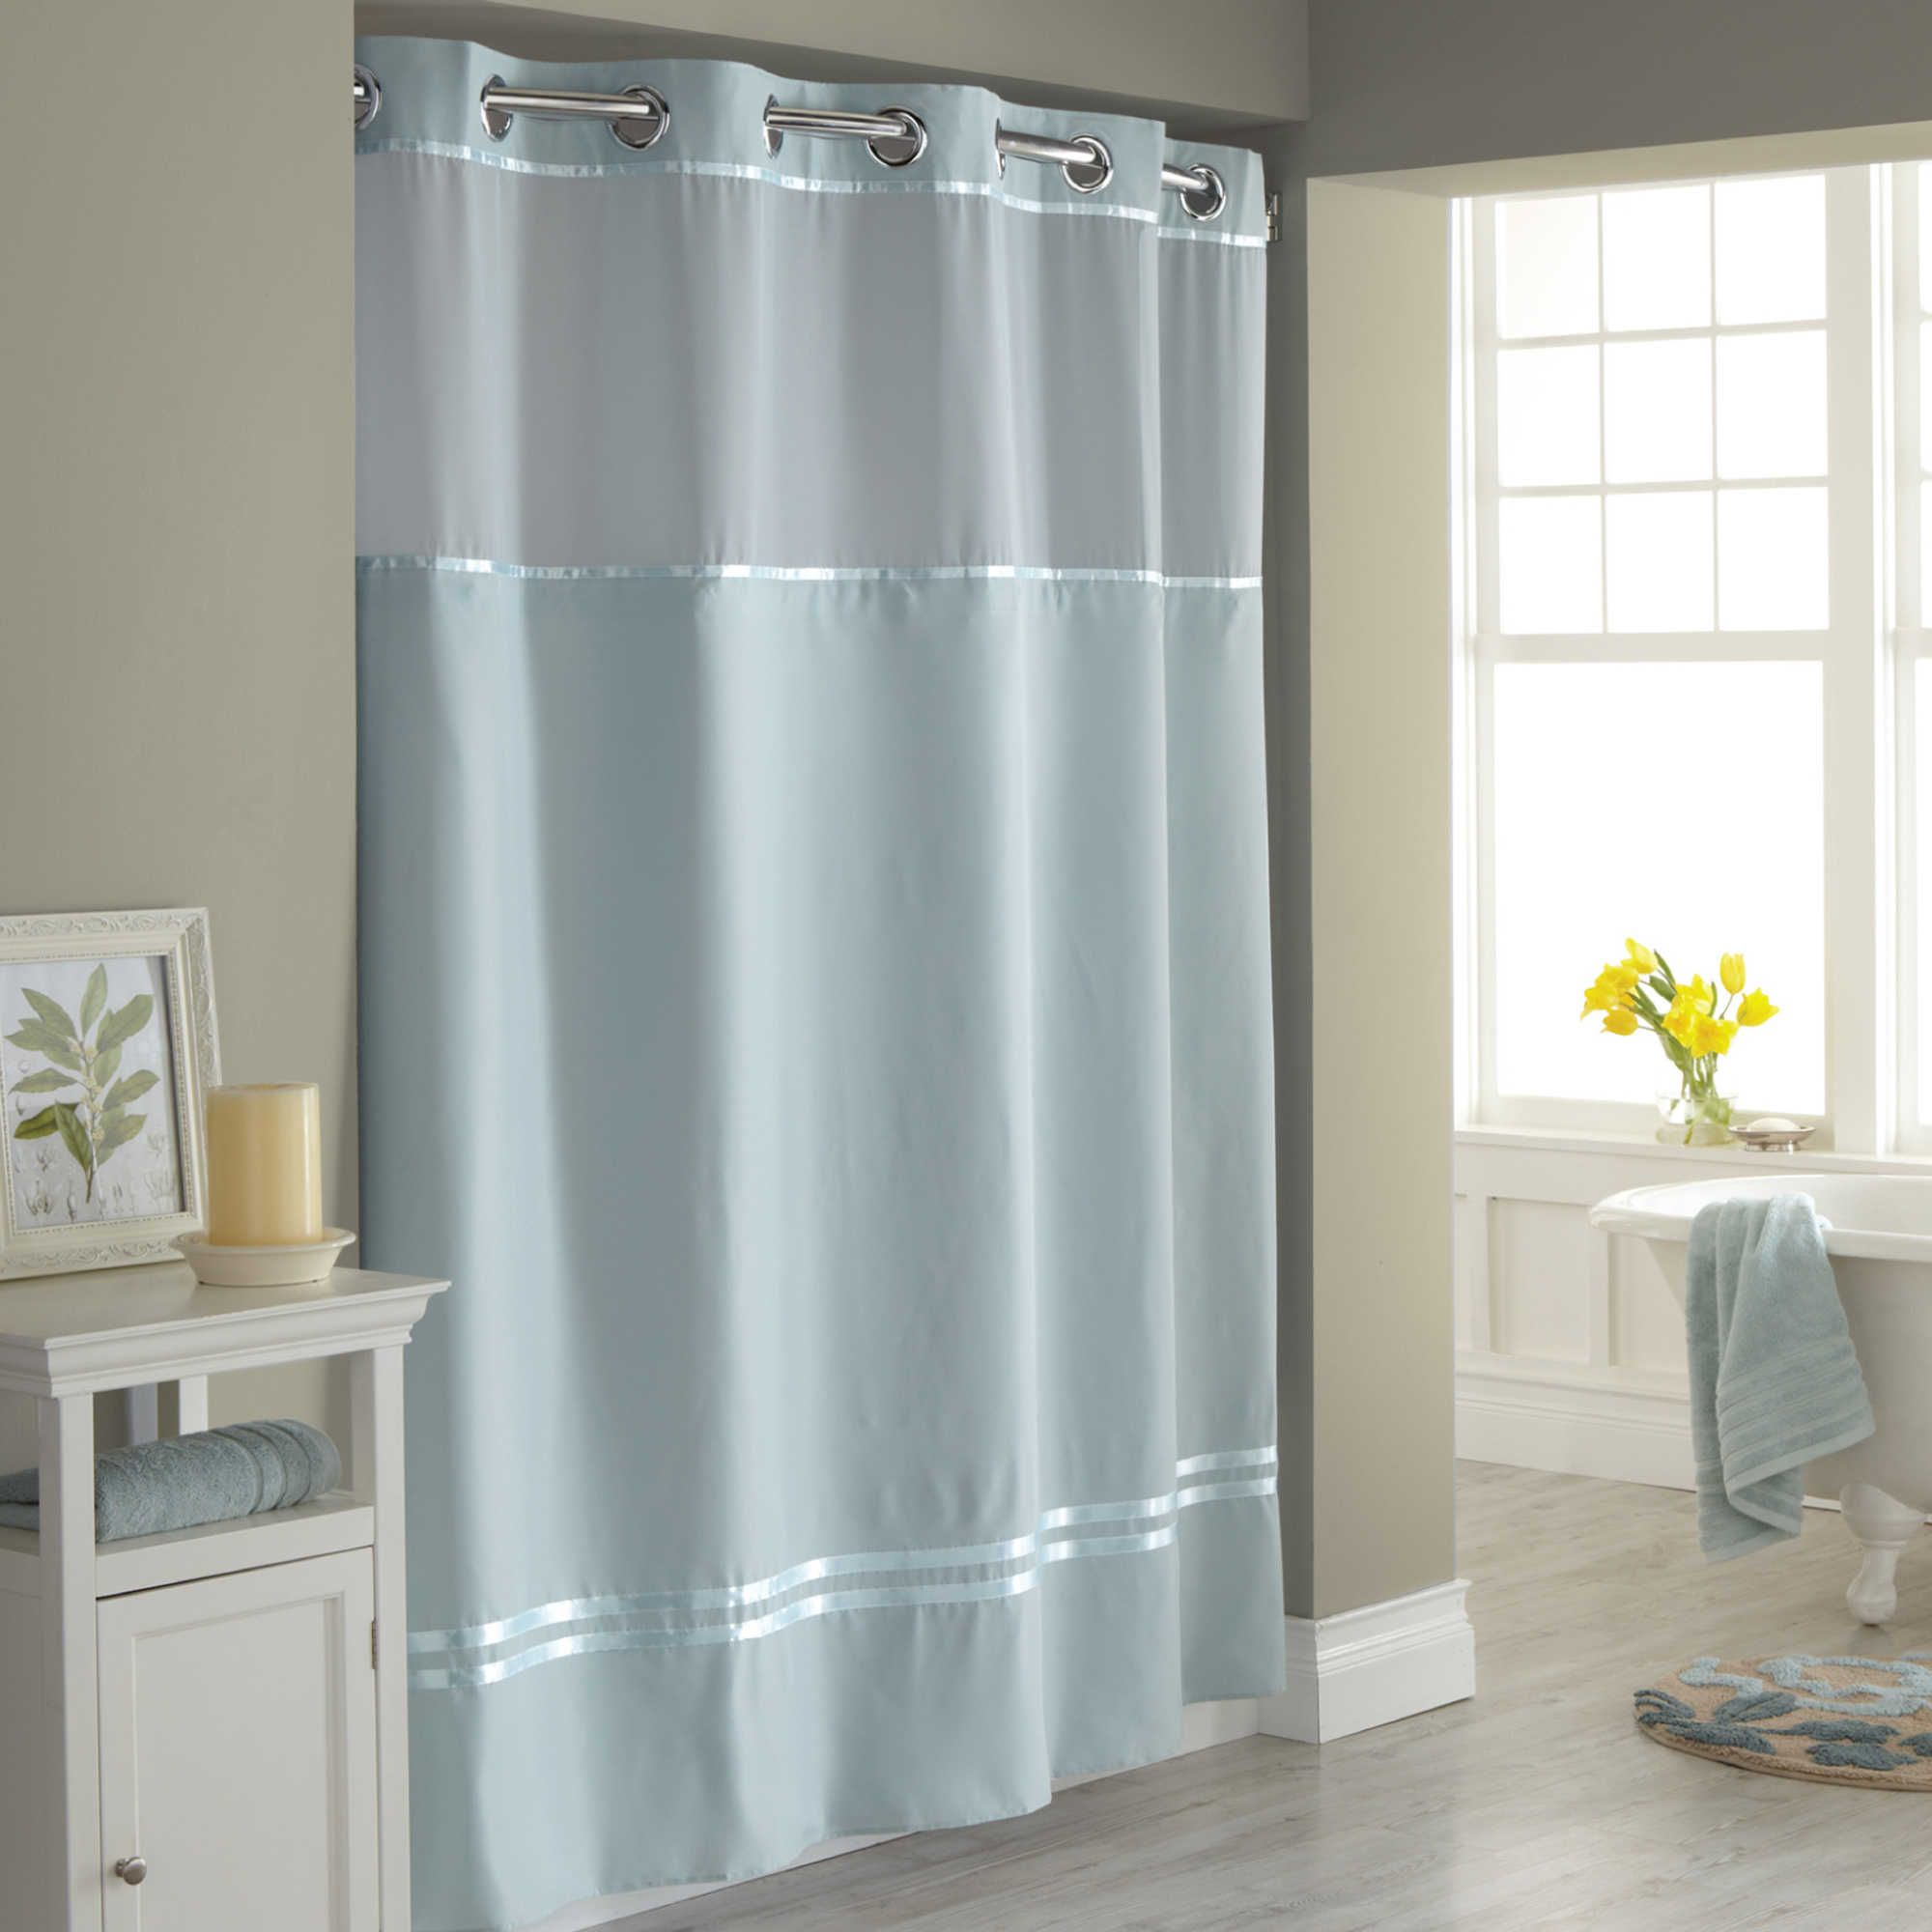 Hookless Escape Fabric Shower Curtain And Liner Set With Images